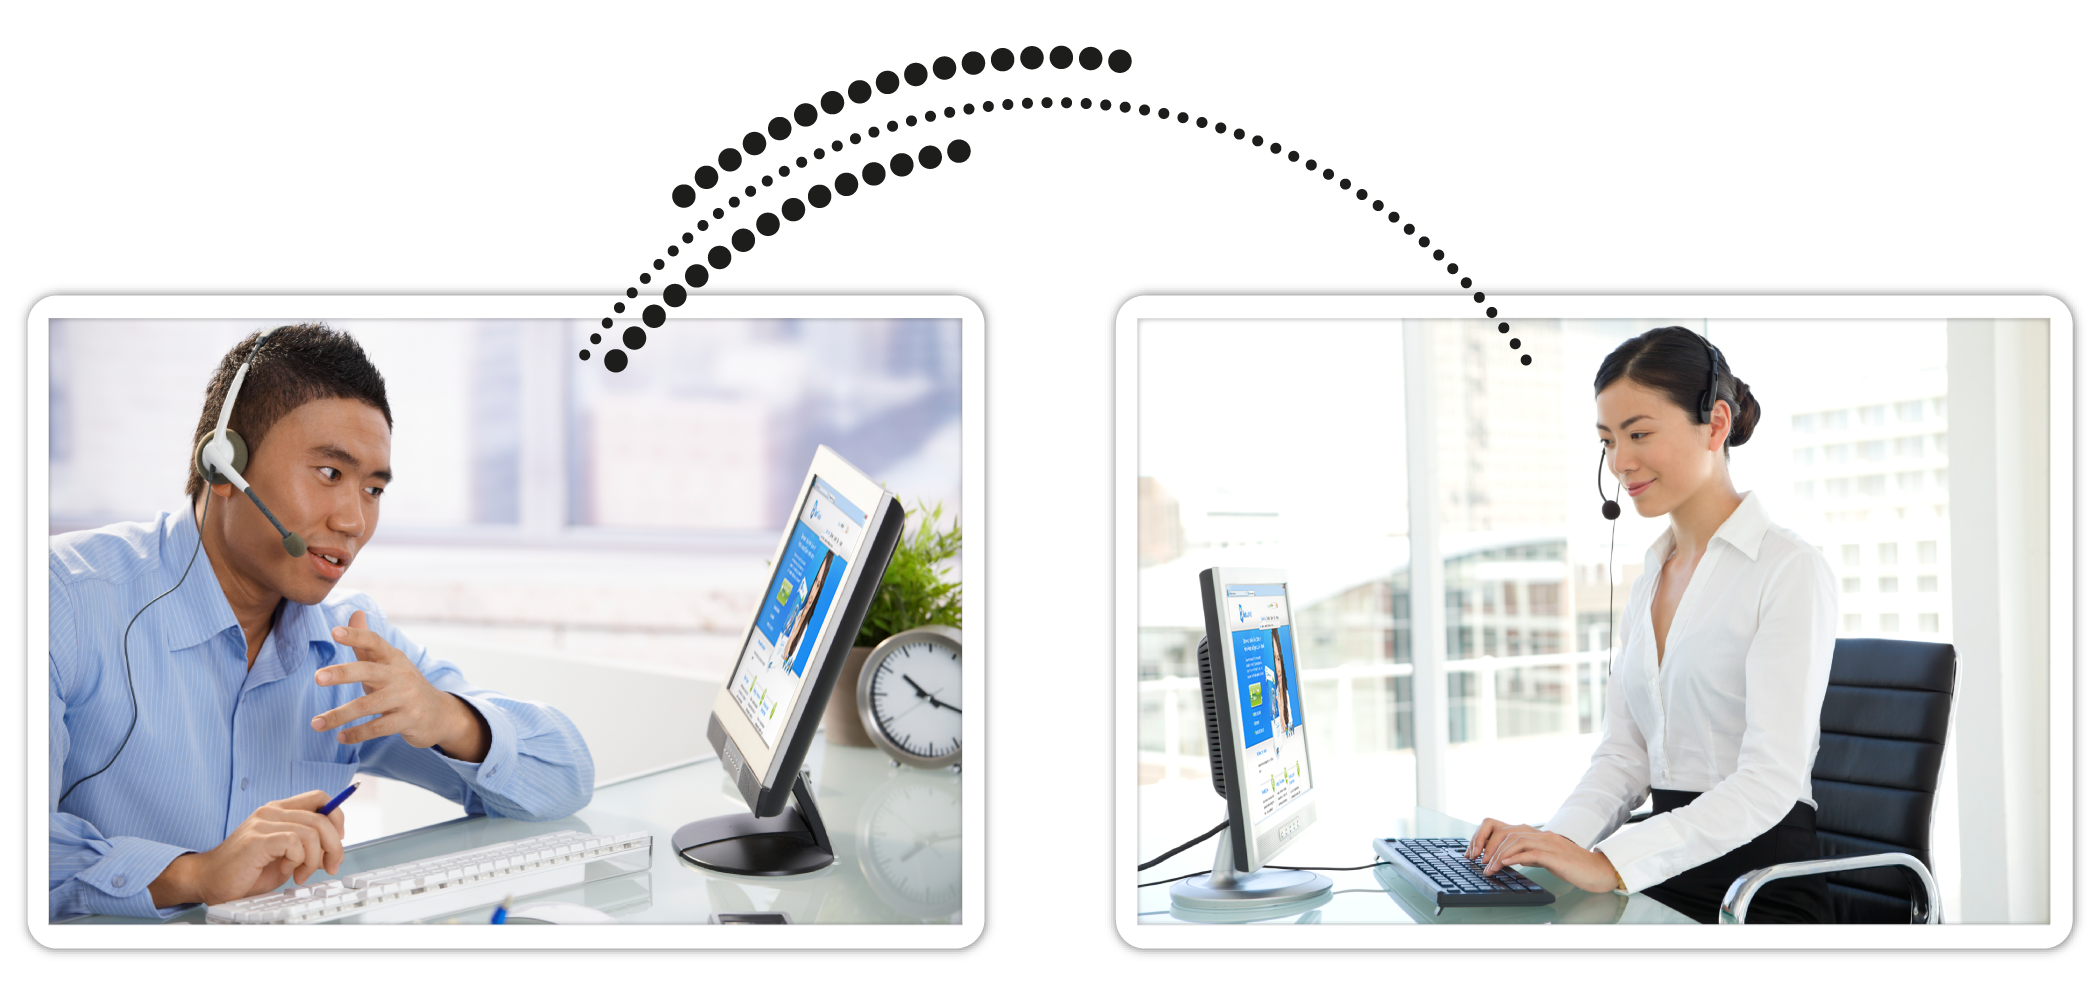 teamviewer remote control online meetings Teamviewer 8 manual remote control wwwteamviewercom page 6 of 82 about teamviewer 1 about teamviewer 11 about the software teamviewer is an intuitive, fast and secure application for remote control and meetings.